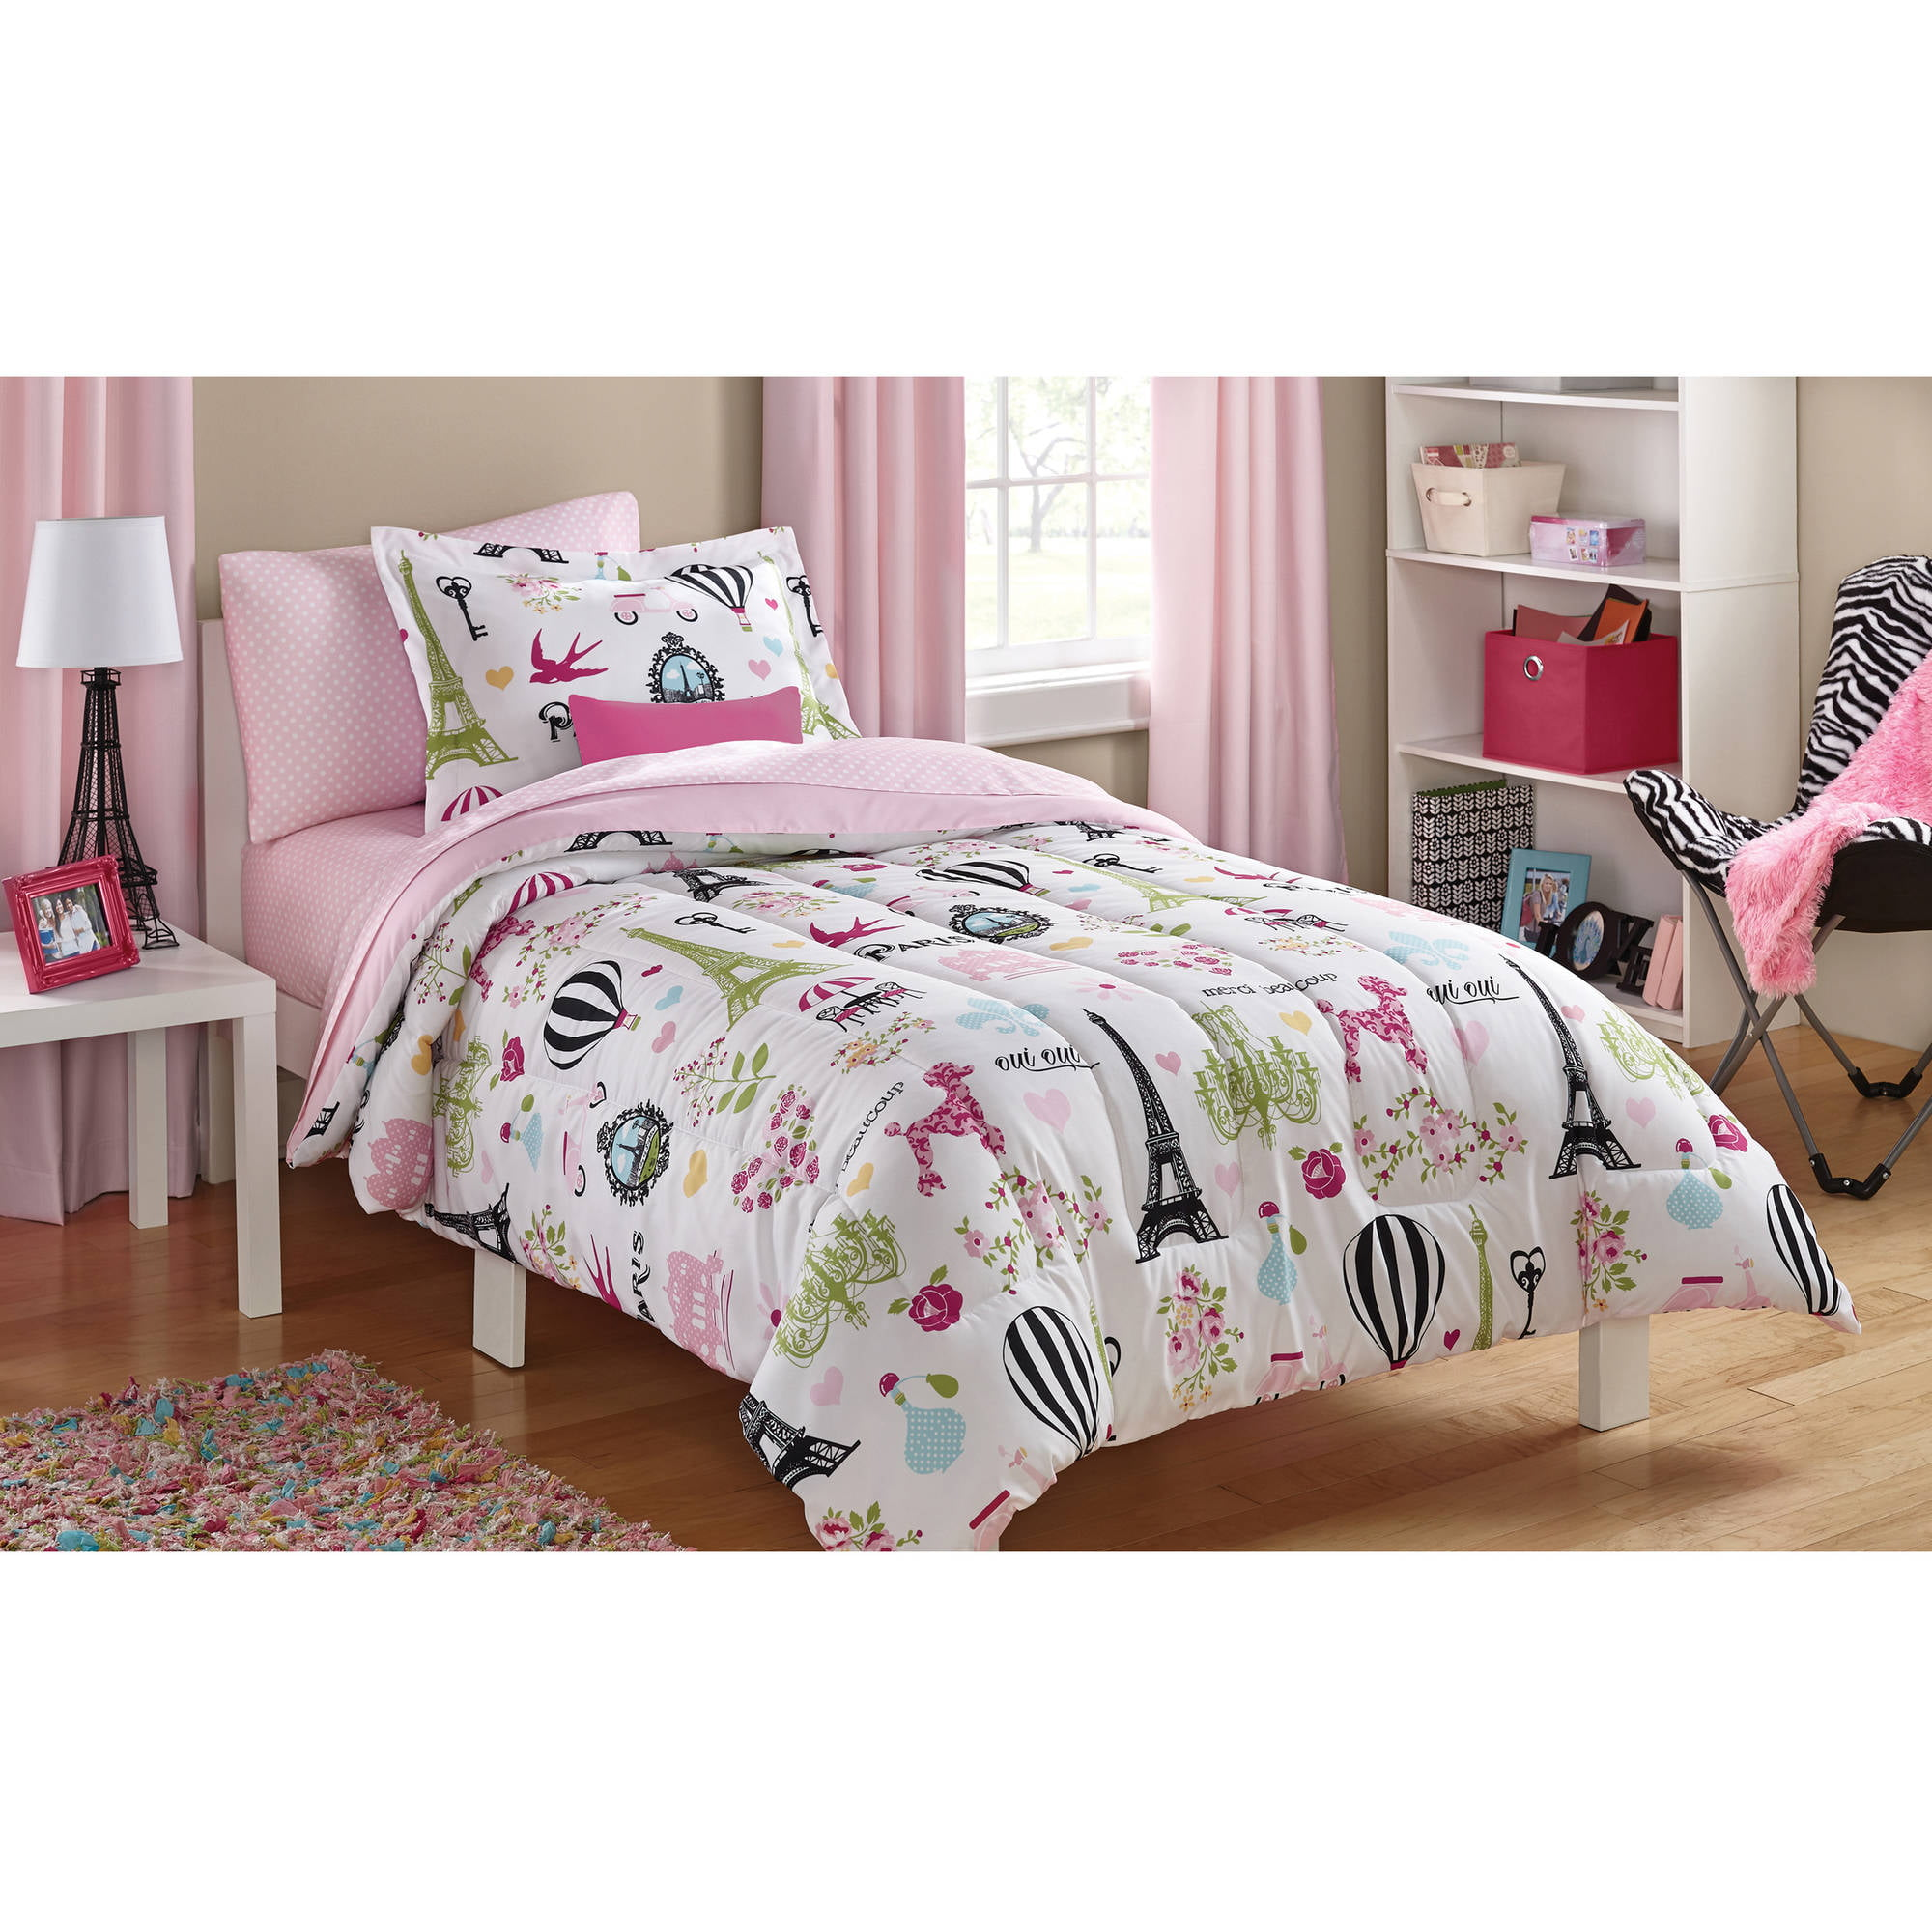 walmart shore bed ip south twin chocolate drawers set en with canada kids savannah